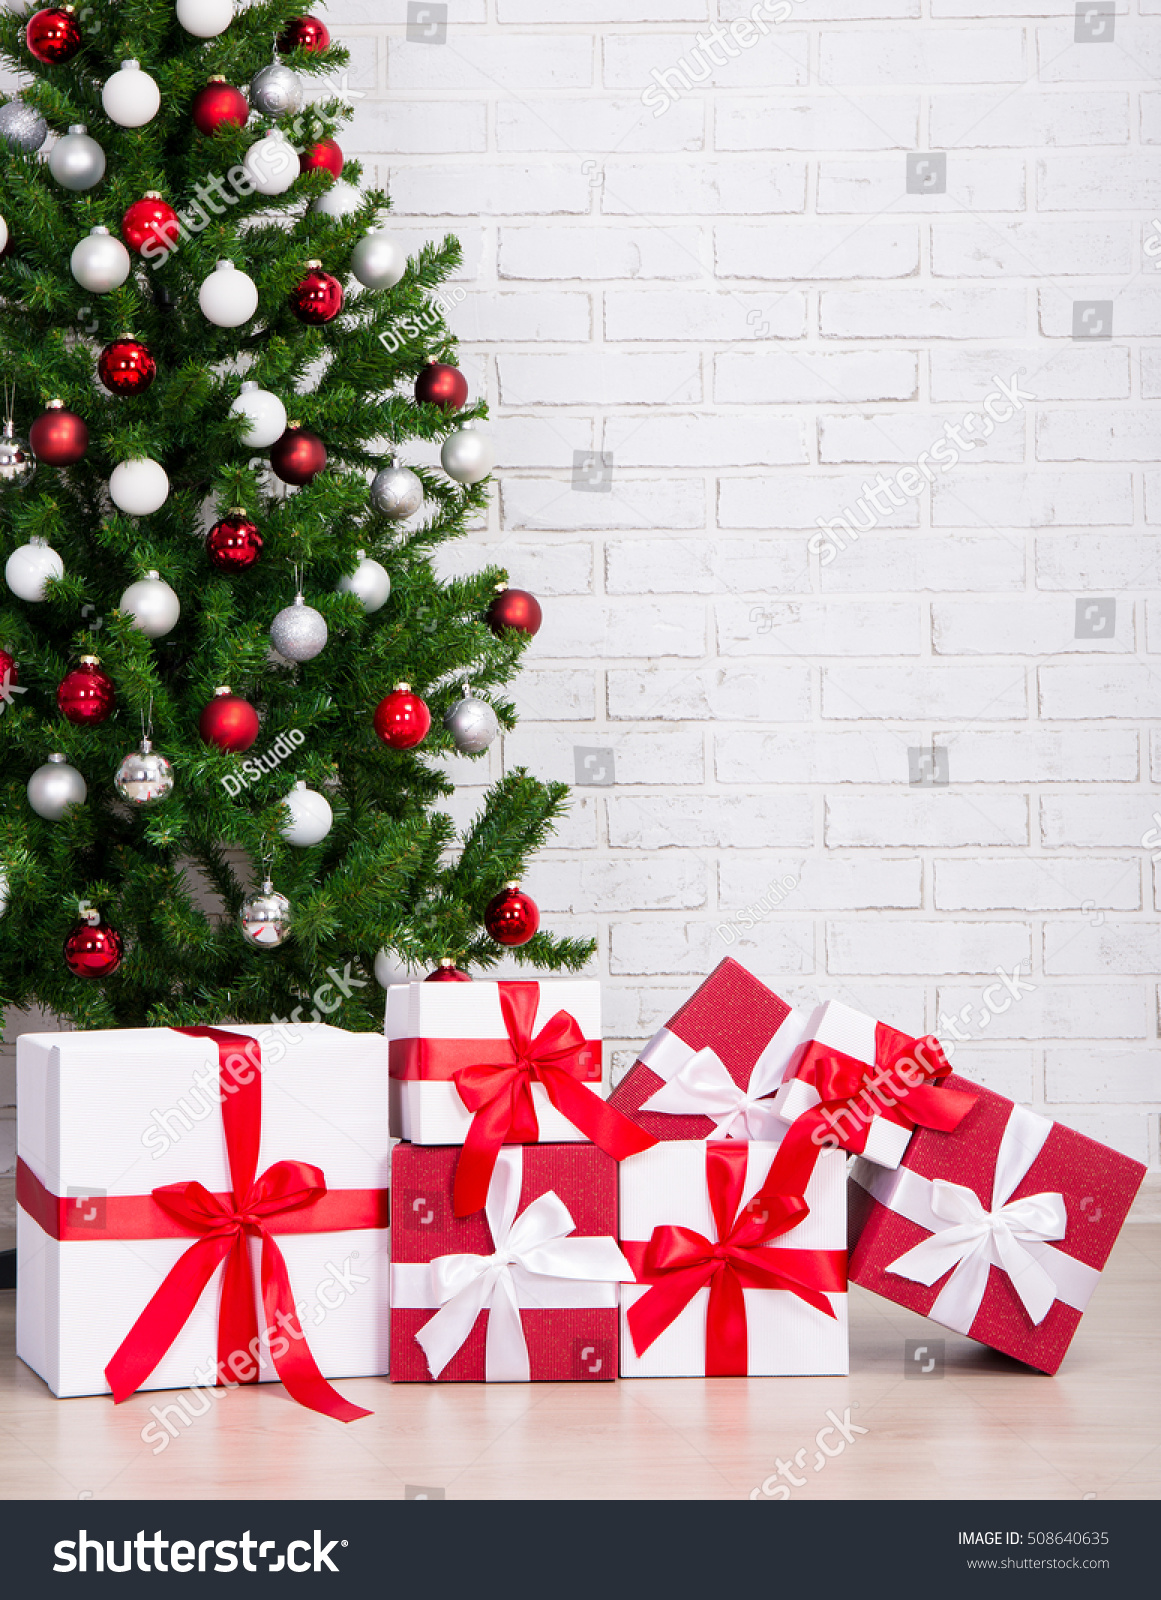 Gift boxes under decorated christmas tree with colorful balls over white brick wall